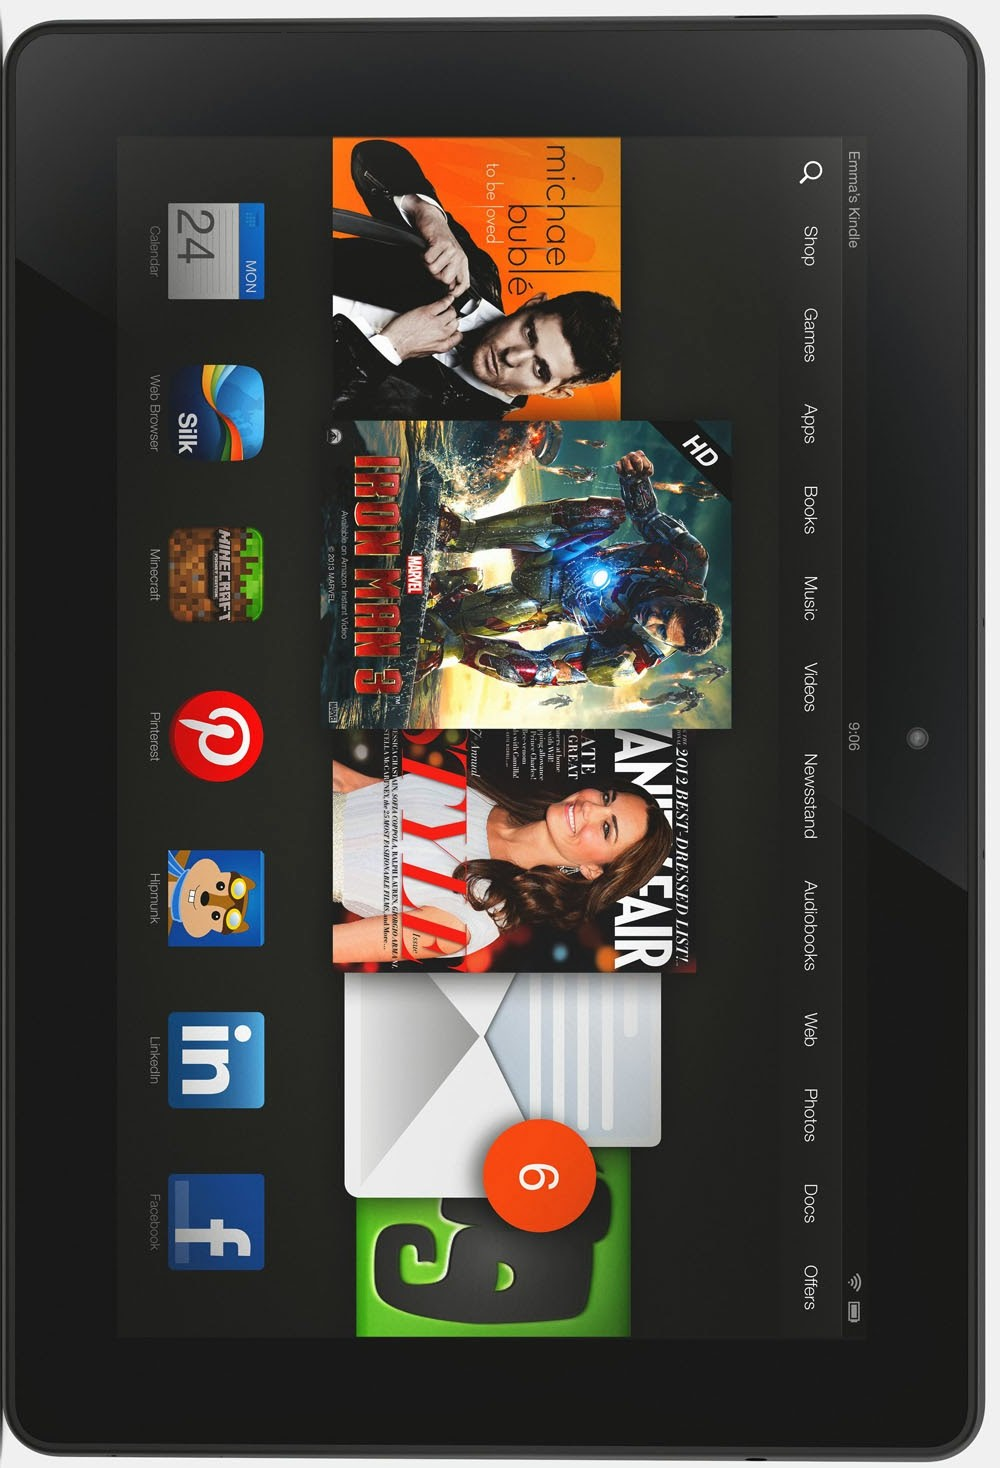 Amazon Kindle Fire HDX 8.9 -Full tablet specifications ...